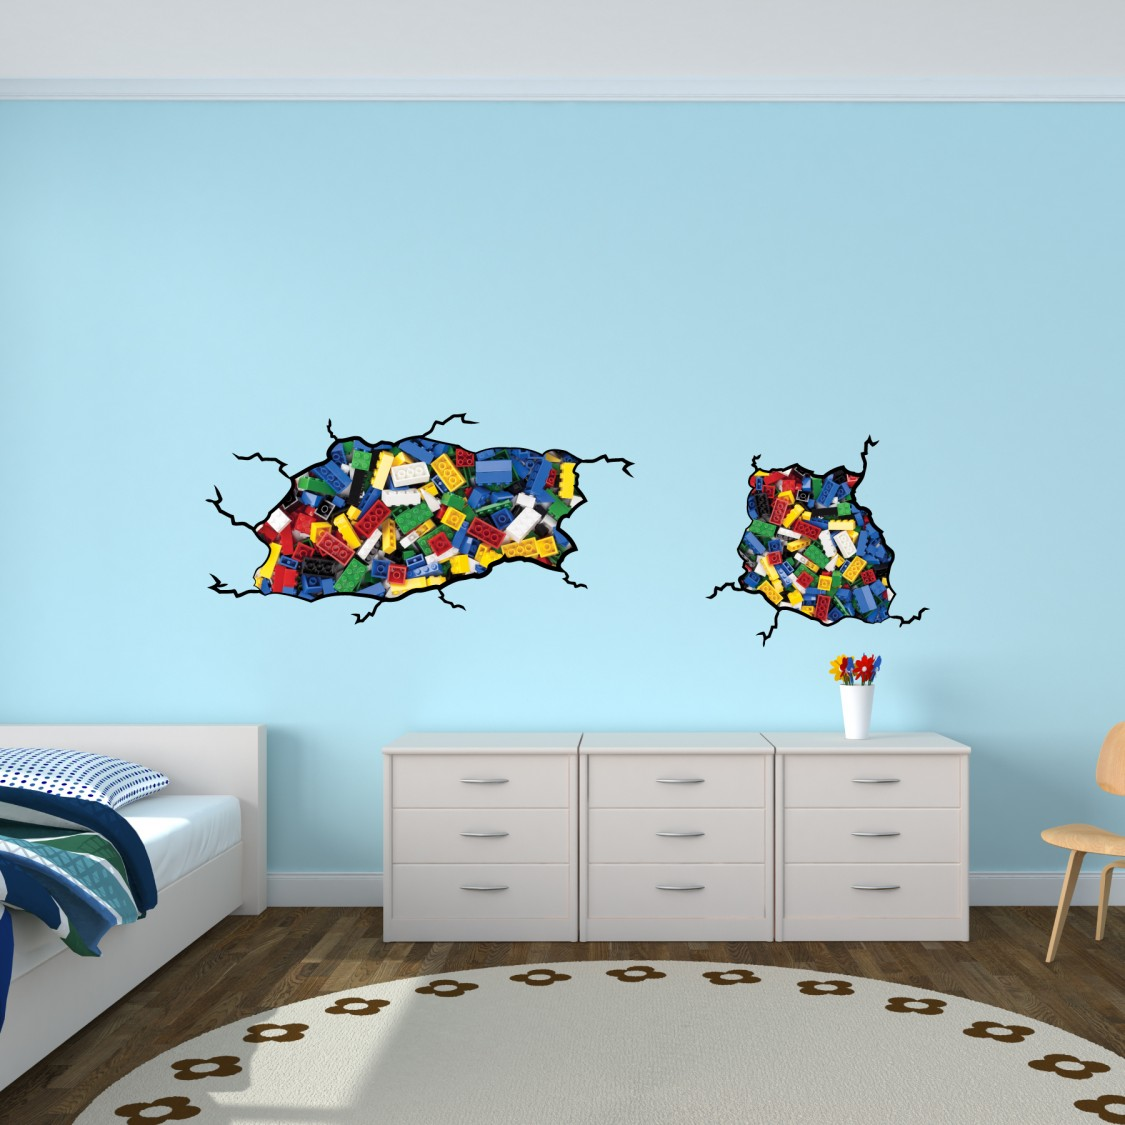 kids wall stickers for bedrooms with lego inspired wall 301 moved permanently